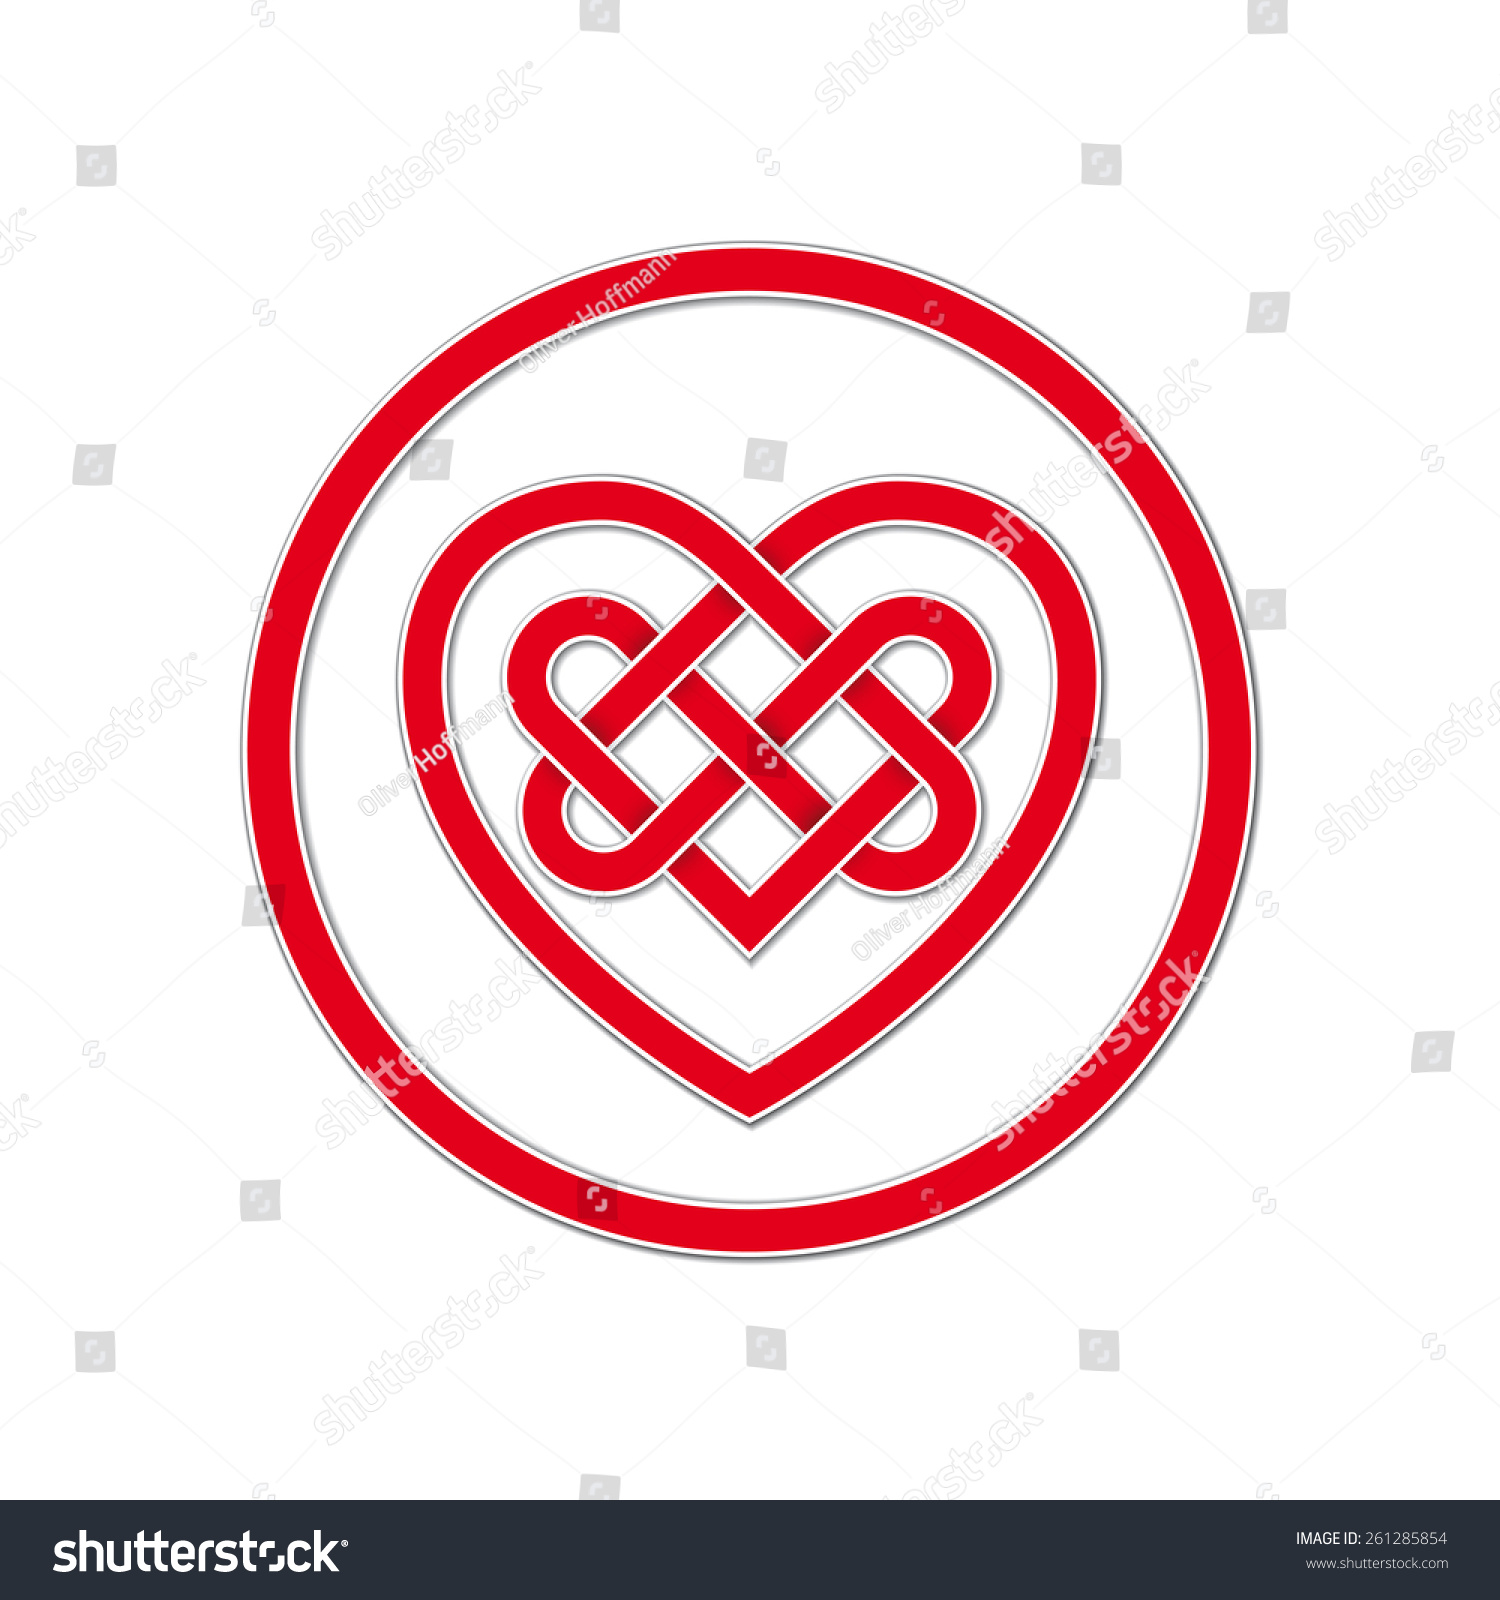 Celtic knot symbol eternal love vector stock vector 261285854 celtic knot symbol of eternal love vector illustration of red heart shaped celtic knot with biocorpaavc Gallery